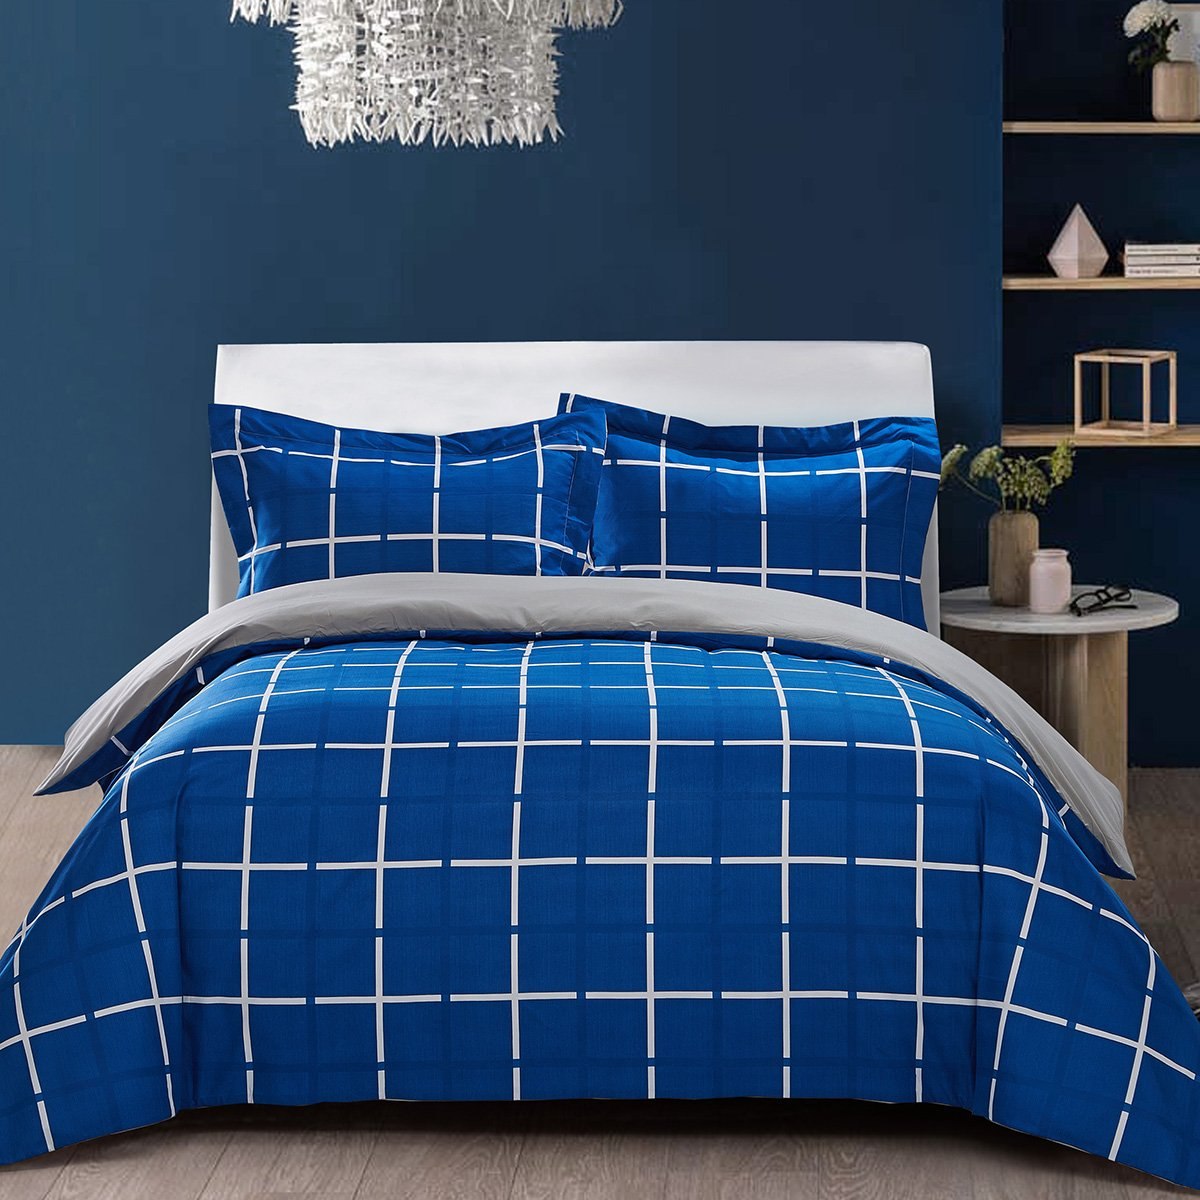 Top Finel Twin Bedding Set Duvet Cover 1 Pillowcase Silky Soft Wrinkle & Fade Resistant Breathable DoubleSide Printed,2Pcs,Blue Stripe& Gray